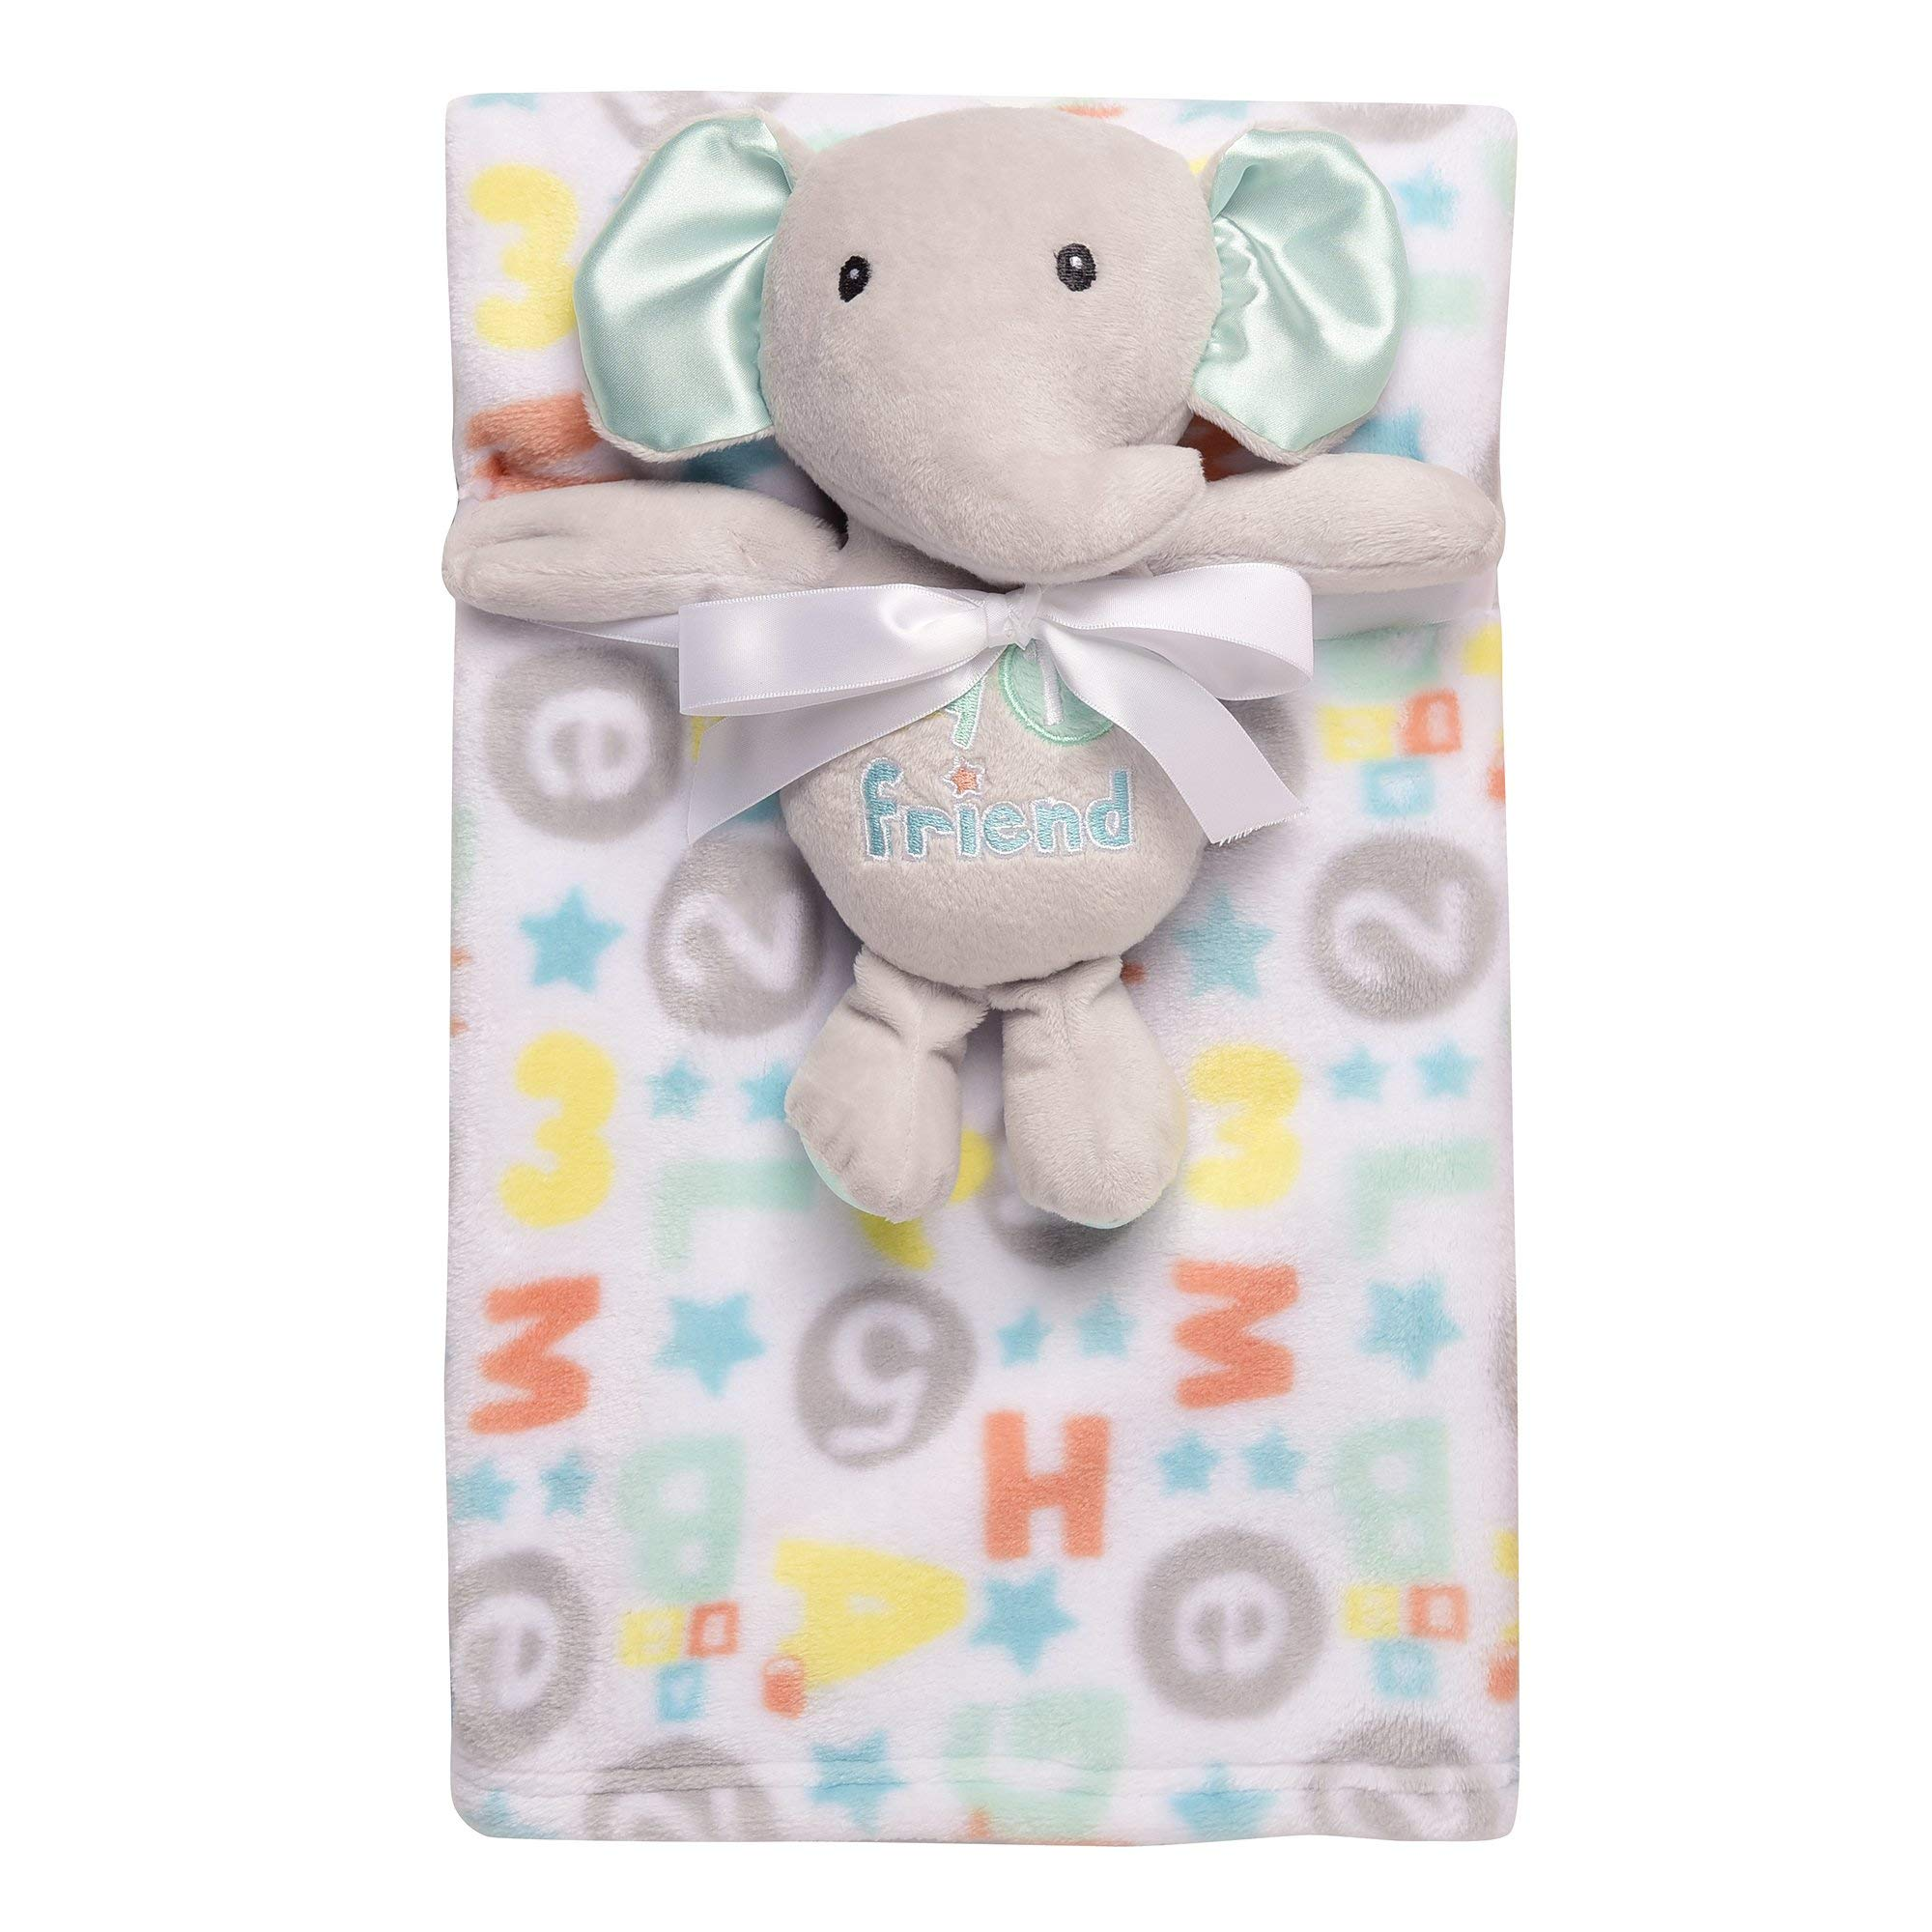 Baby Starters 2-Piece Snuggle Buddy Toy Rattle and Plush Baby Blanket Gift Set for Newborns and New Moms (Gray and Blue Elephant, 30x36)